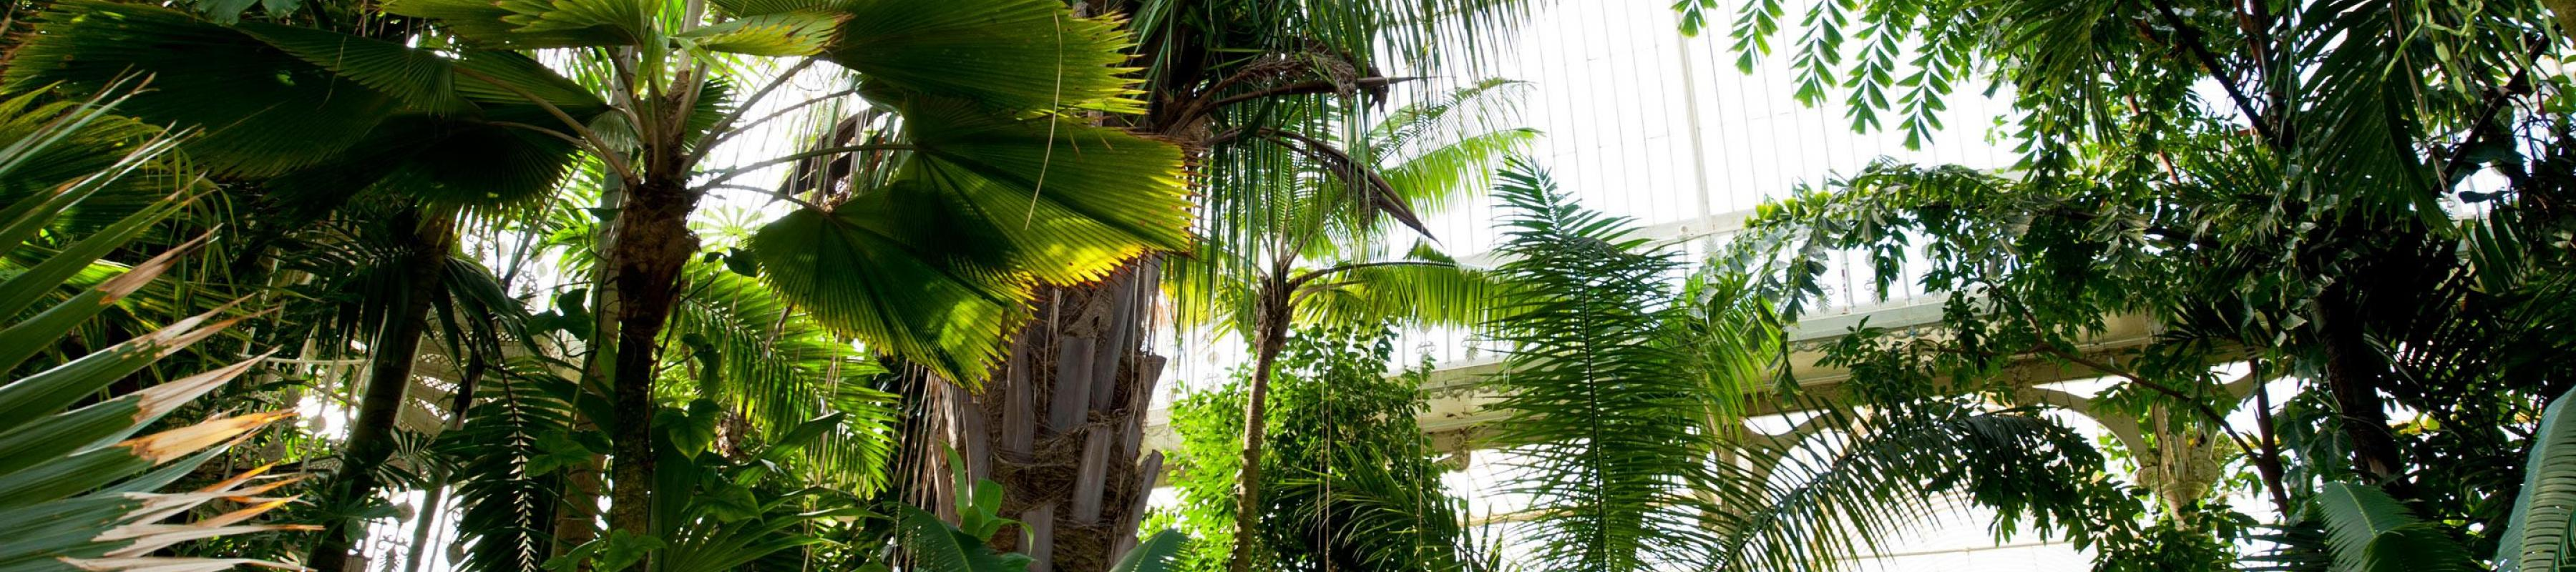 Interior shot of the Palm House canopy